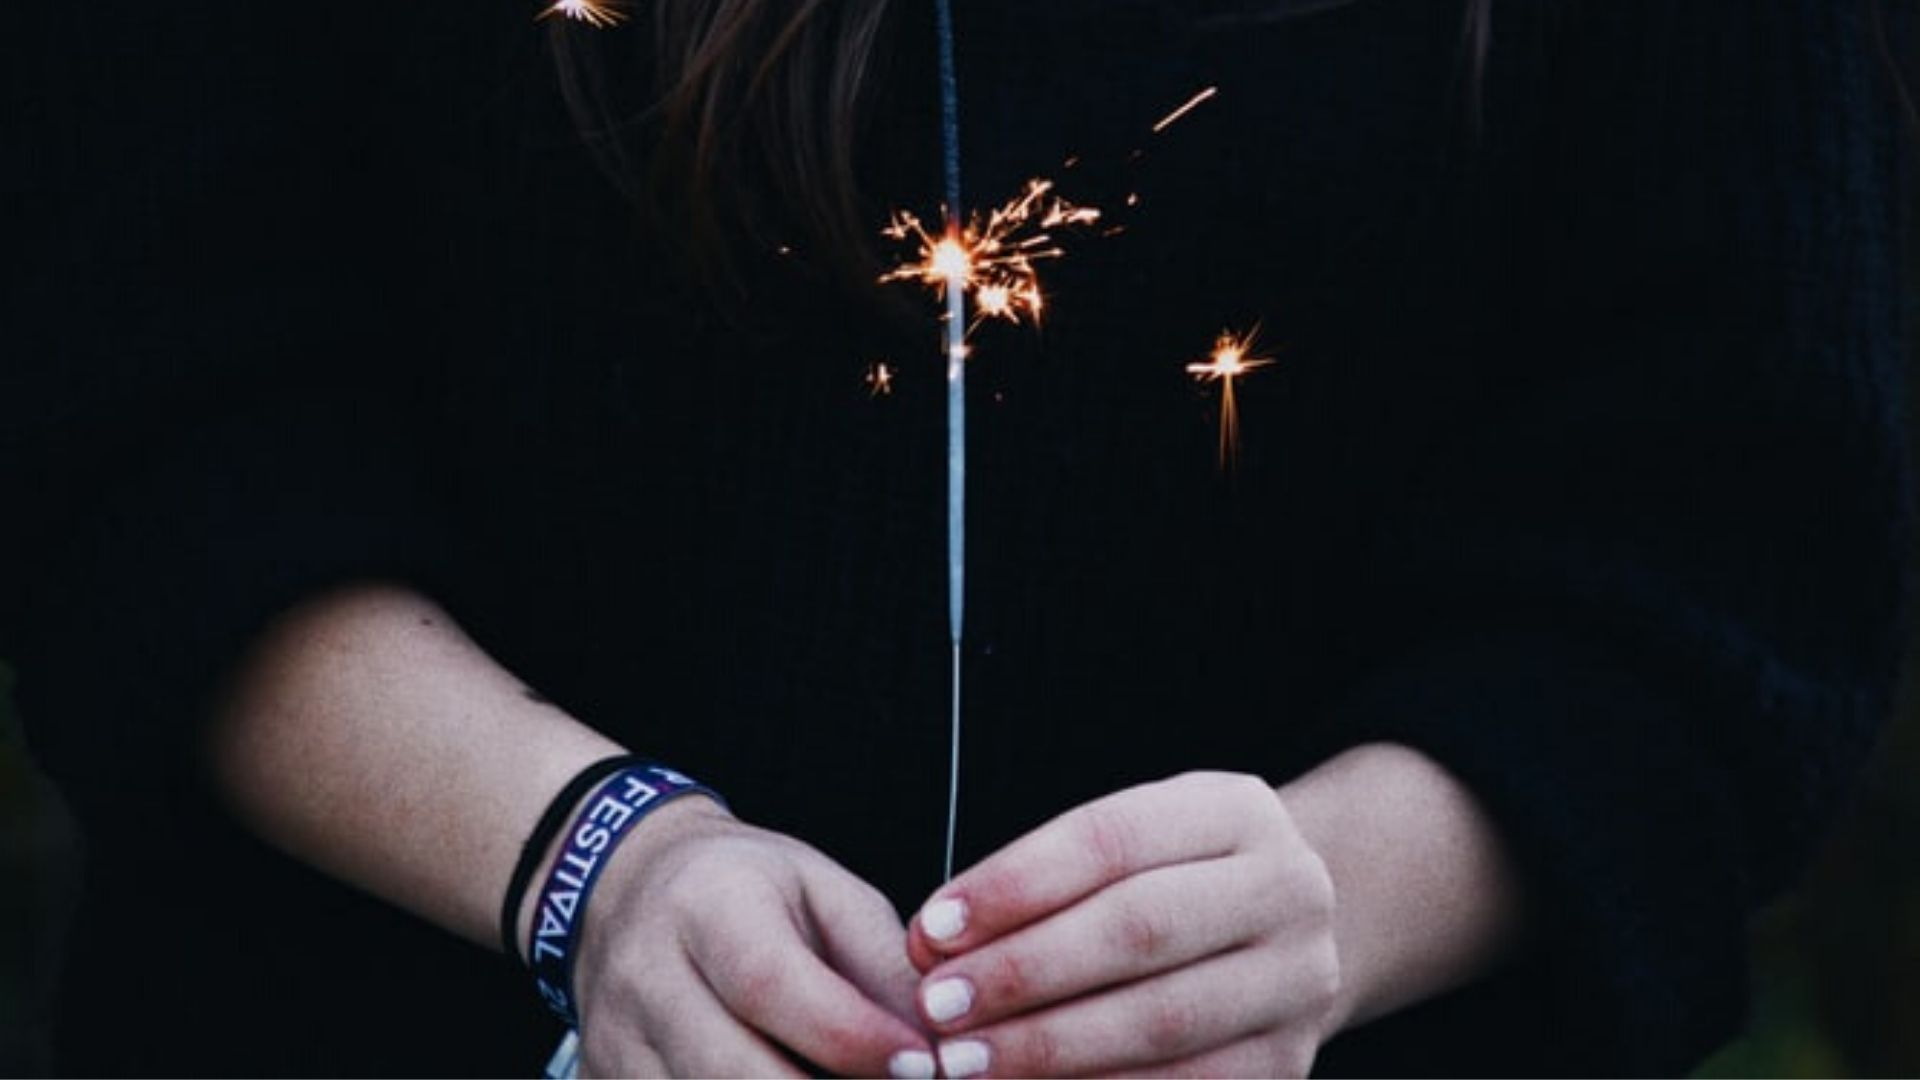 Imbolc ritual feature image of woman holding sparkler